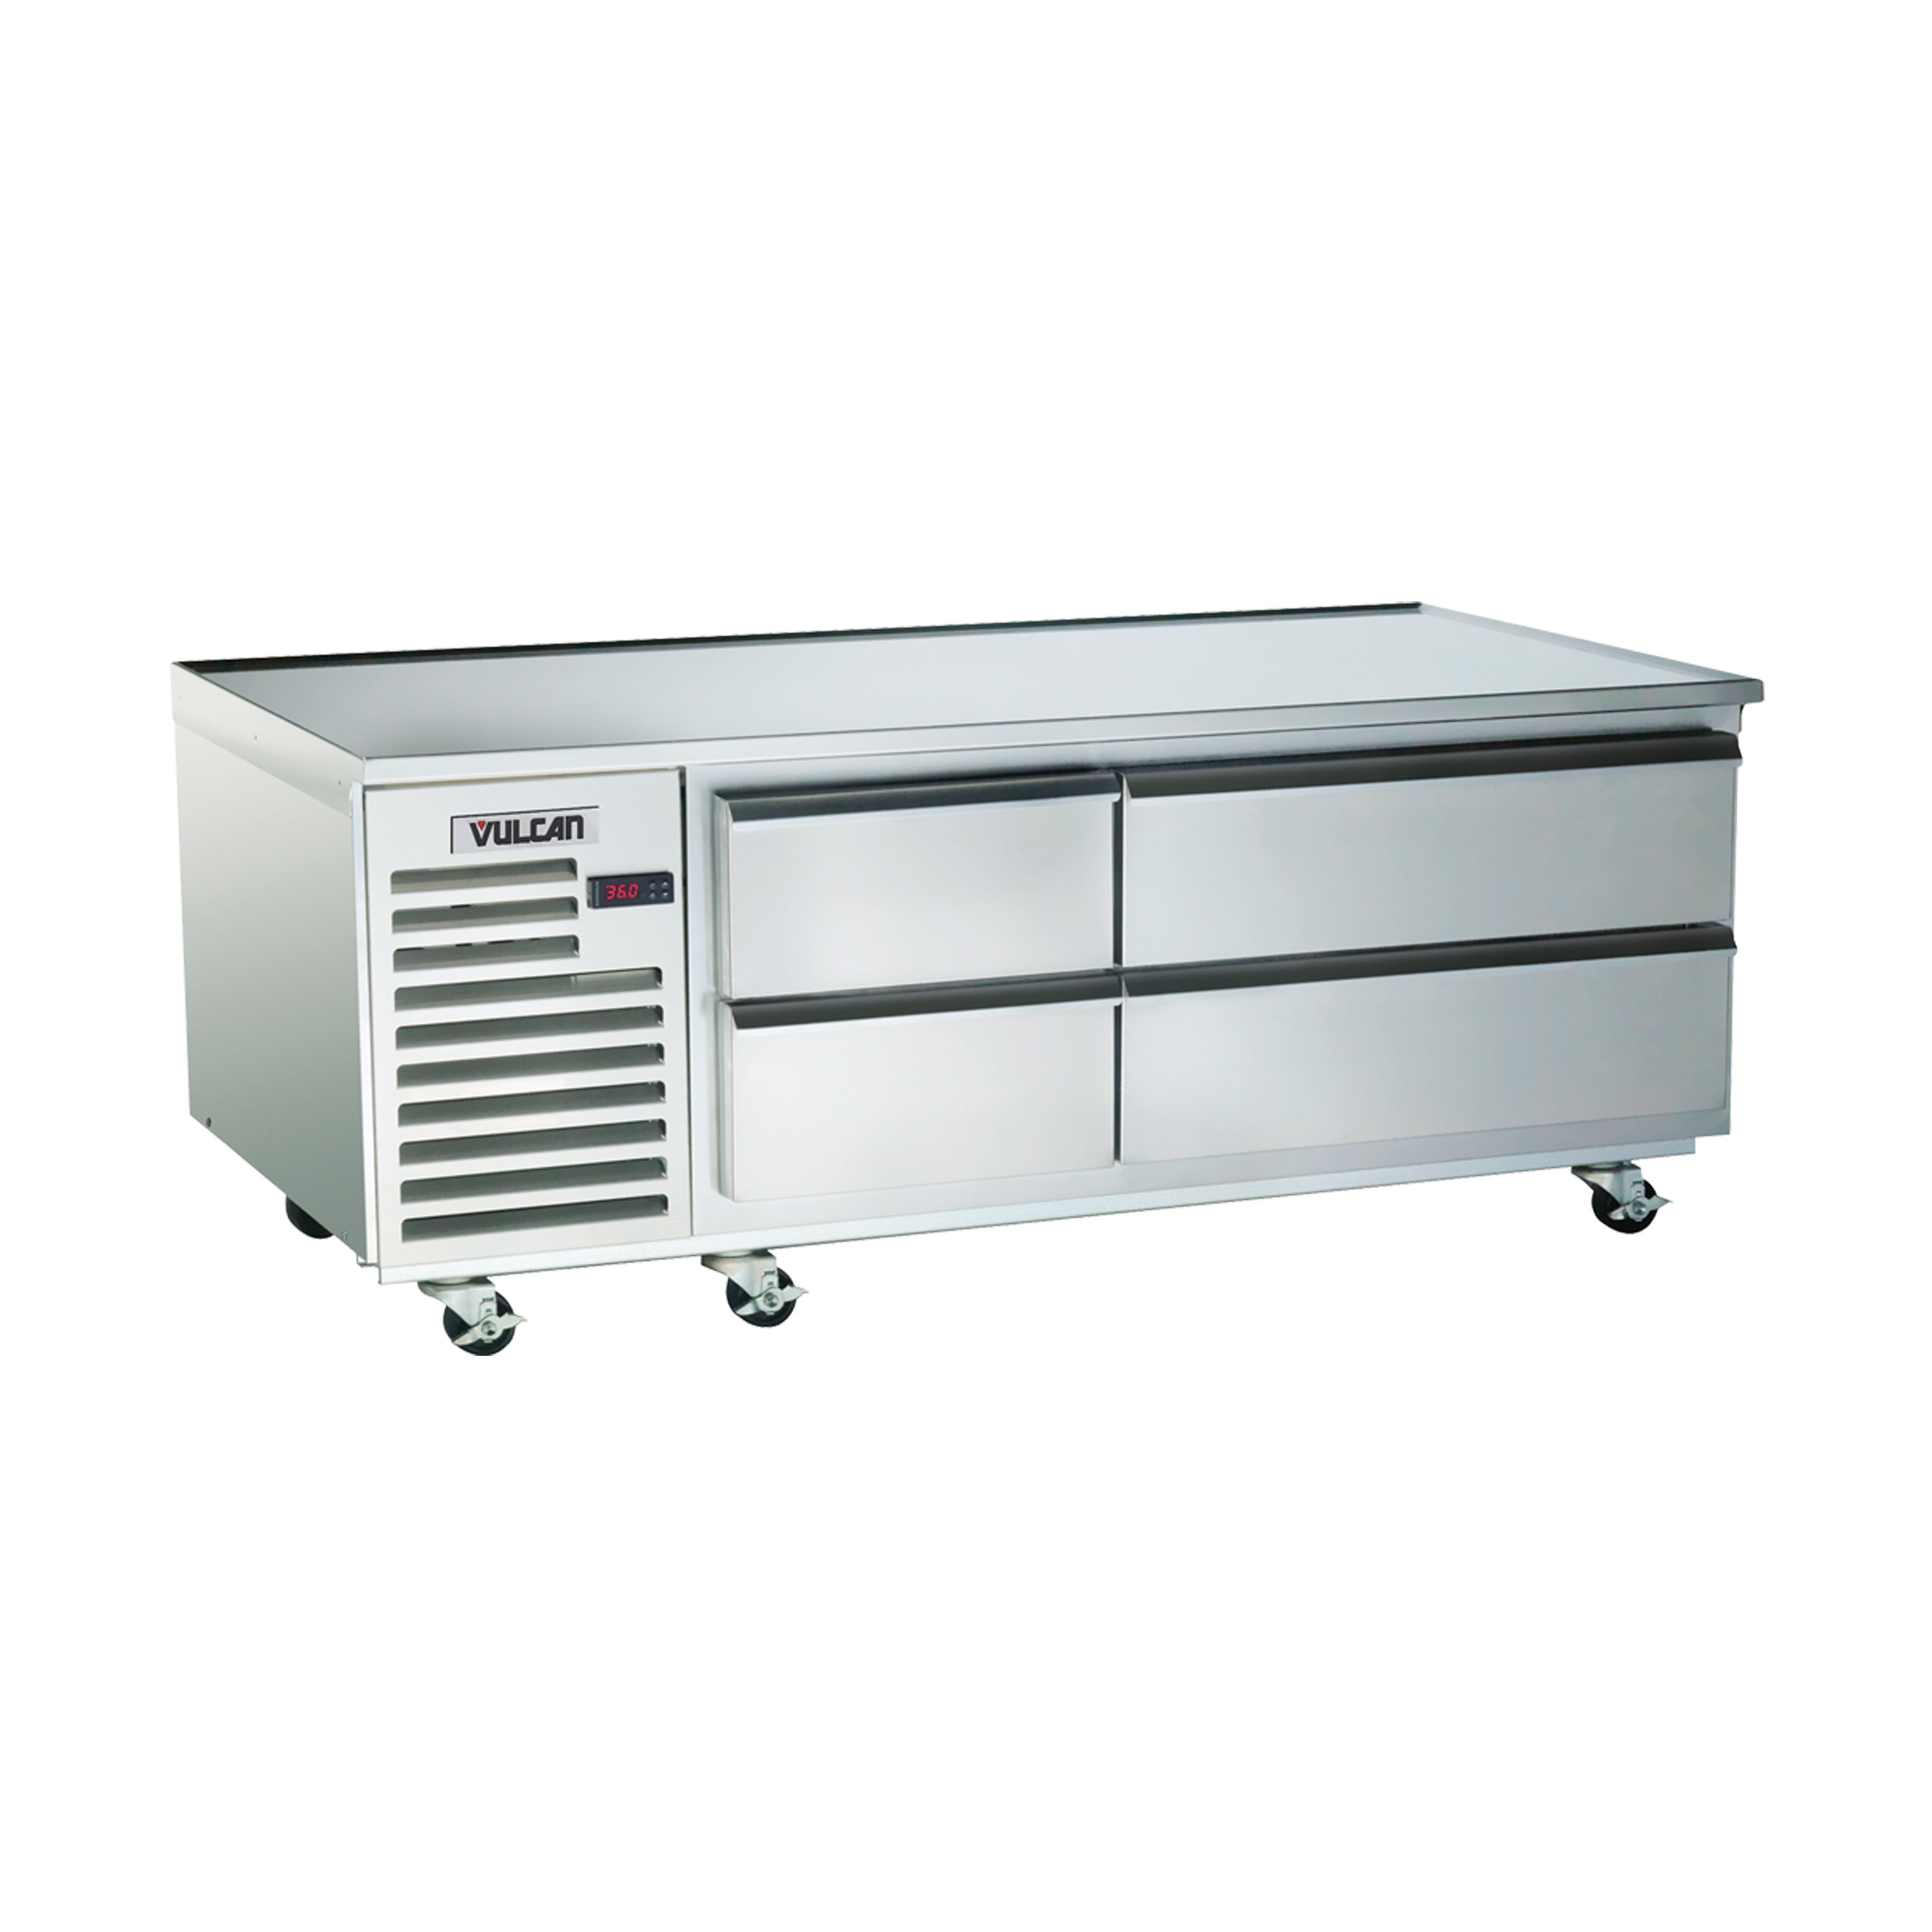 Vulcan VSC36 equipment stand, refrigerated base